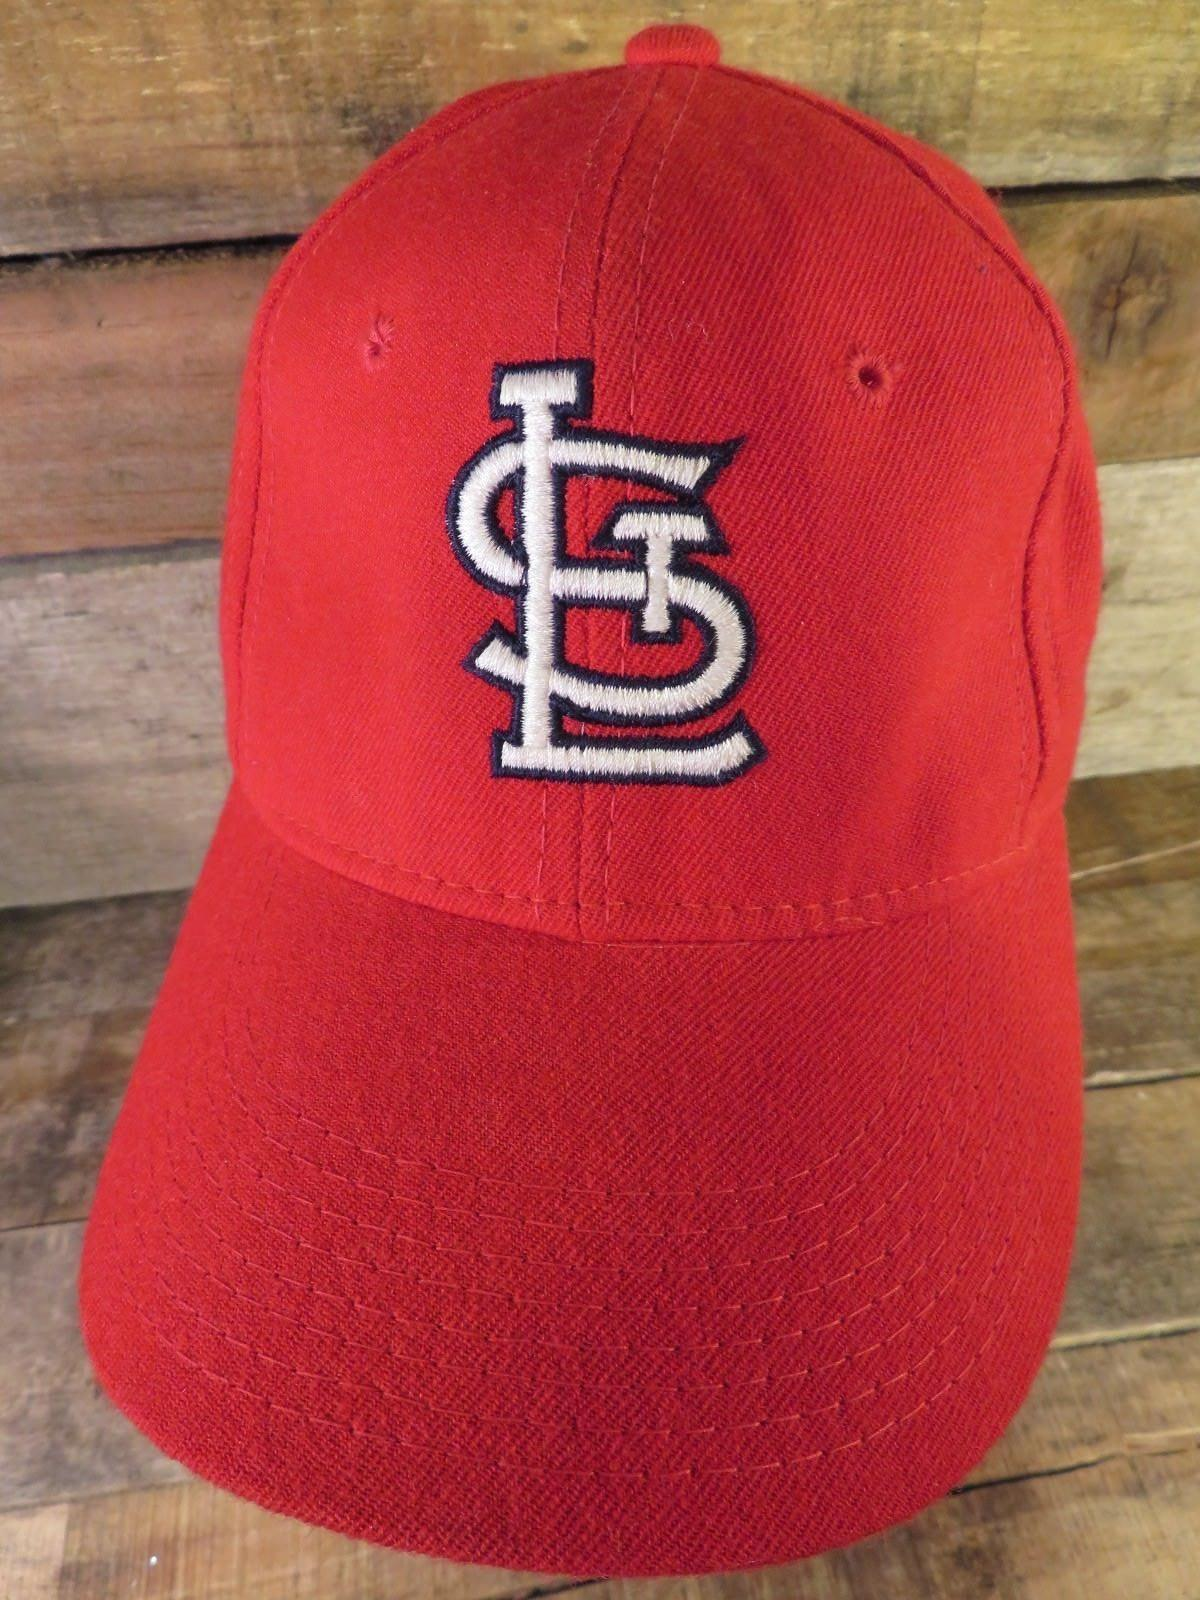 10f1360ed97 St Louis CARDINALS Vintage New Era Fitted and 50 similar items. 57